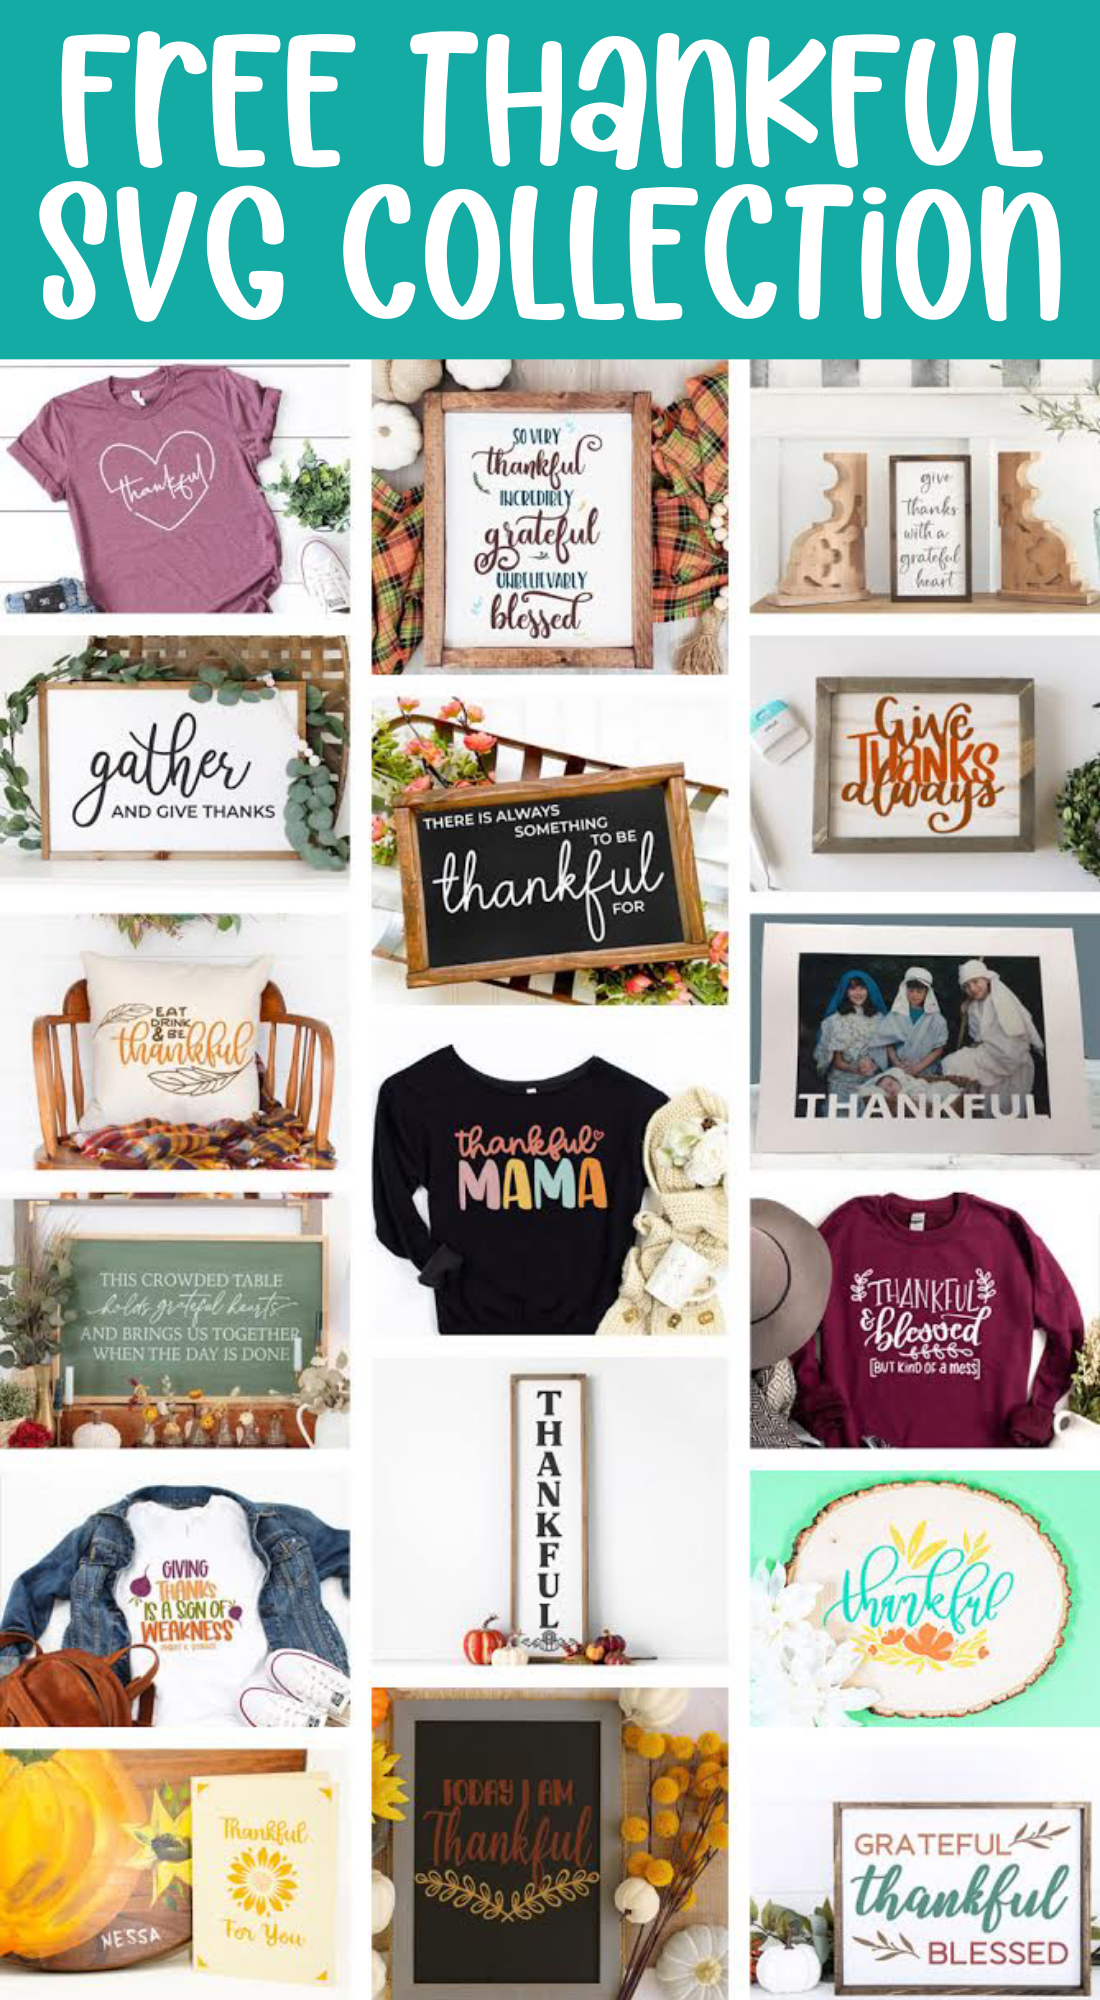 Free Thankful SVG Collection